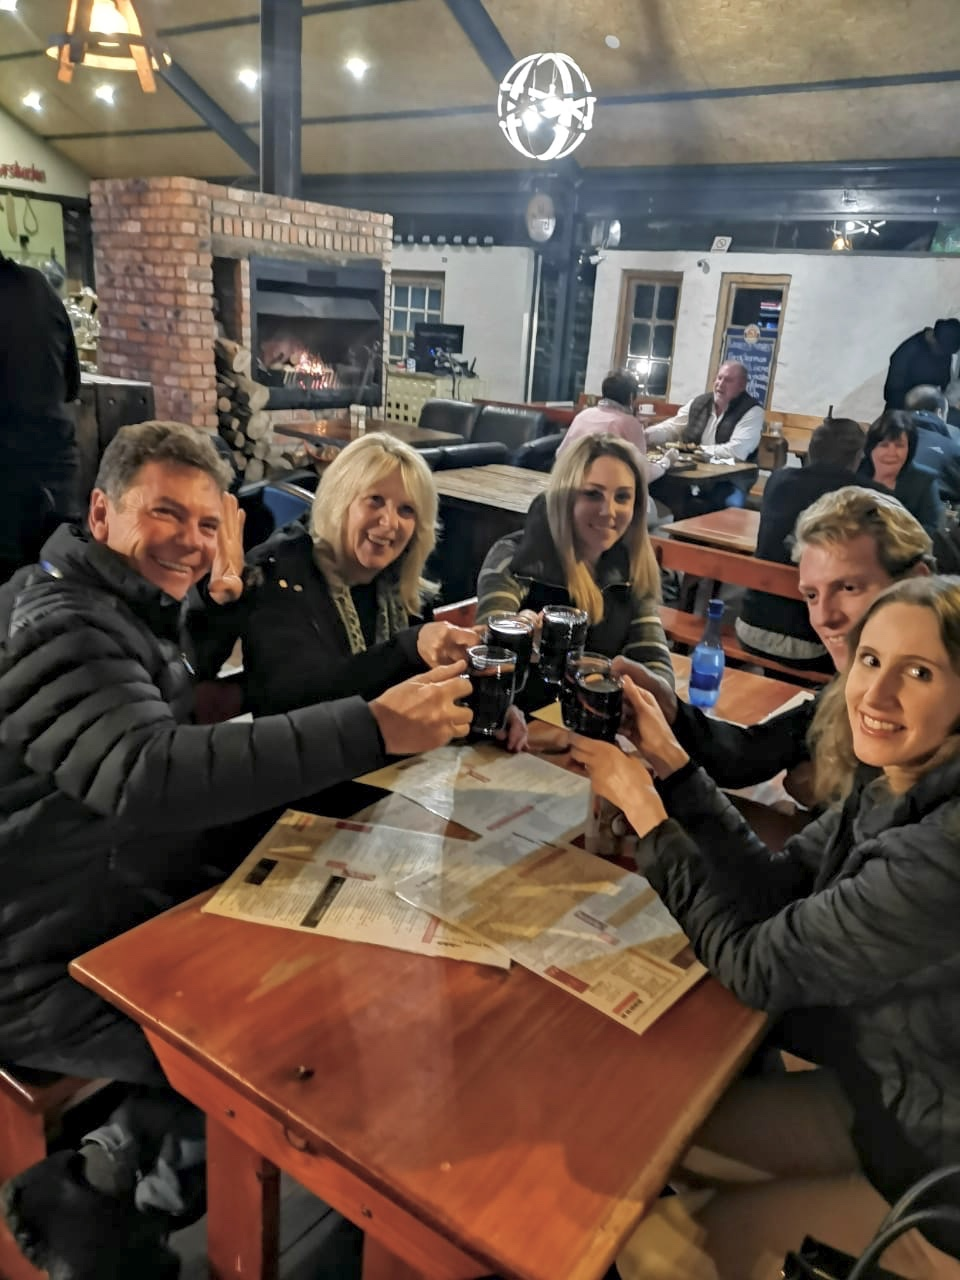 What to do in Clarens Free State 33